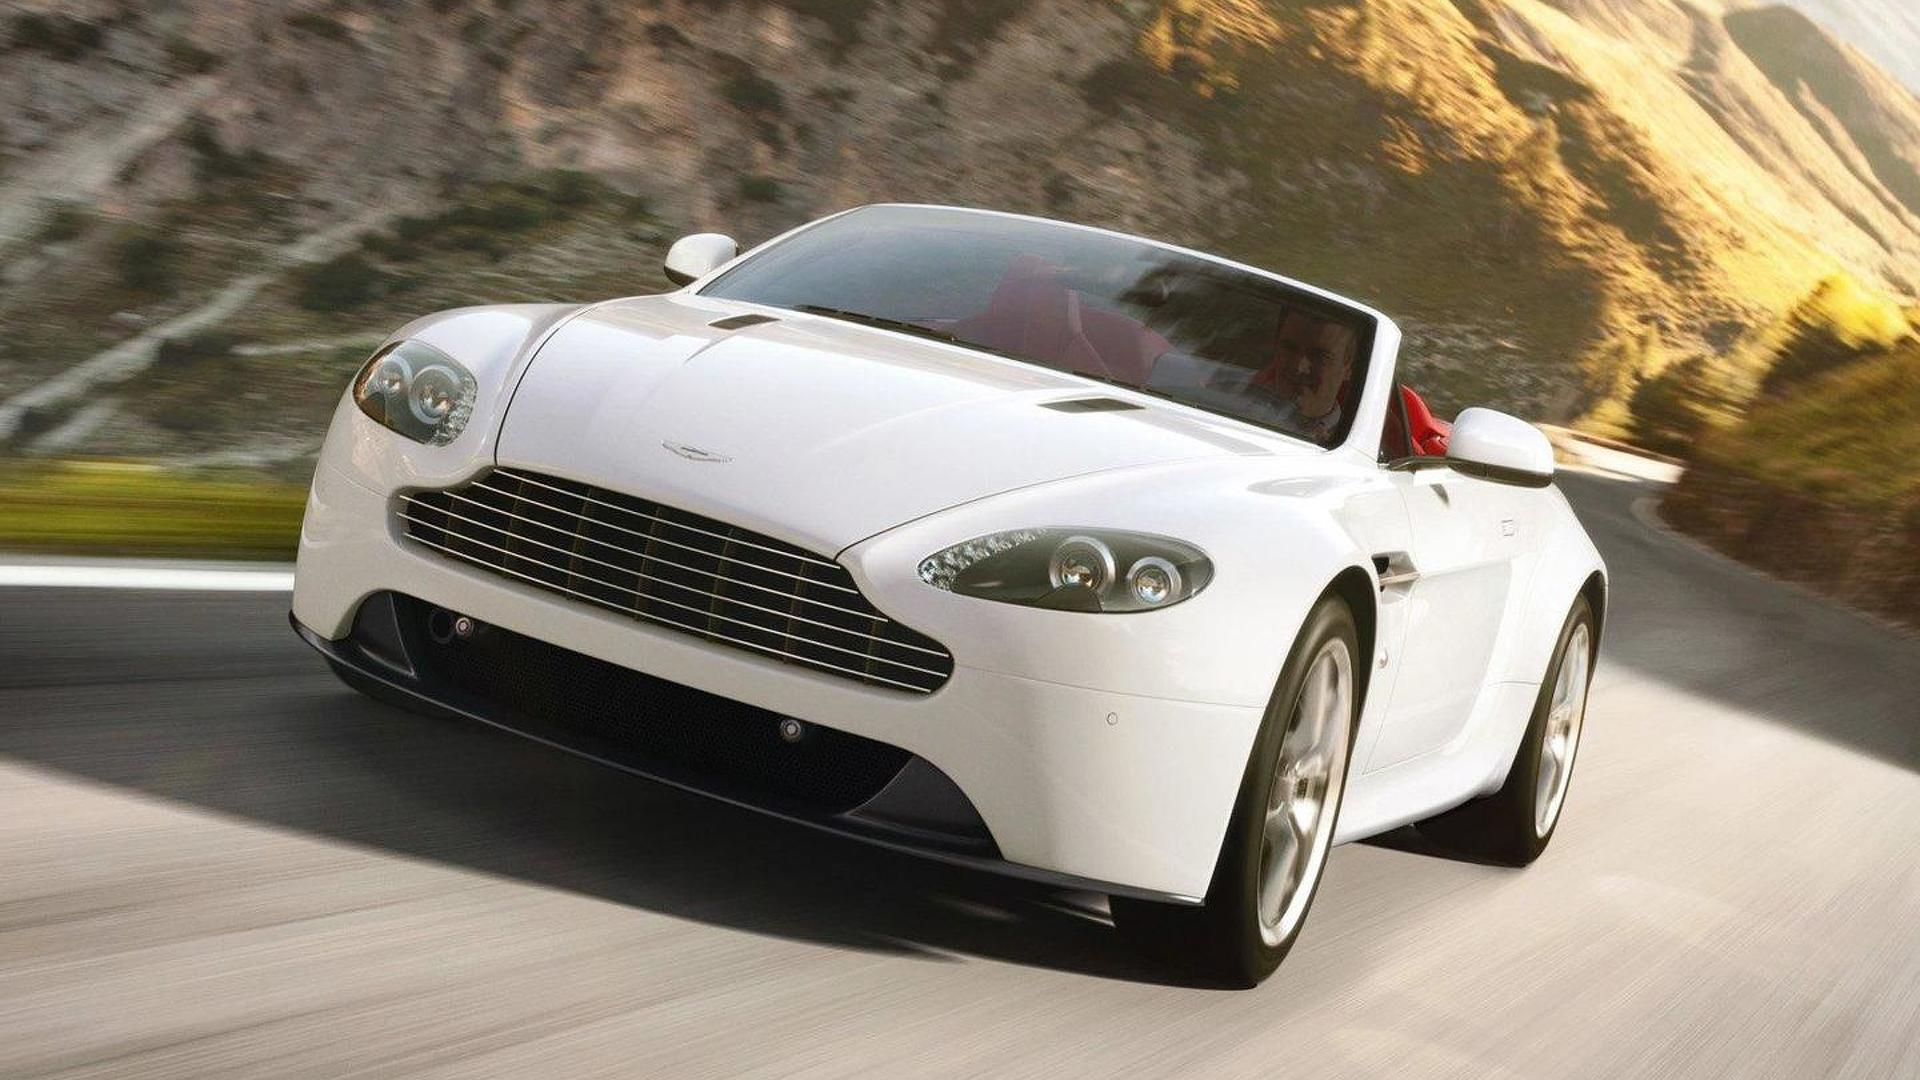 AMG-powered Aston Martins three to four years off - report